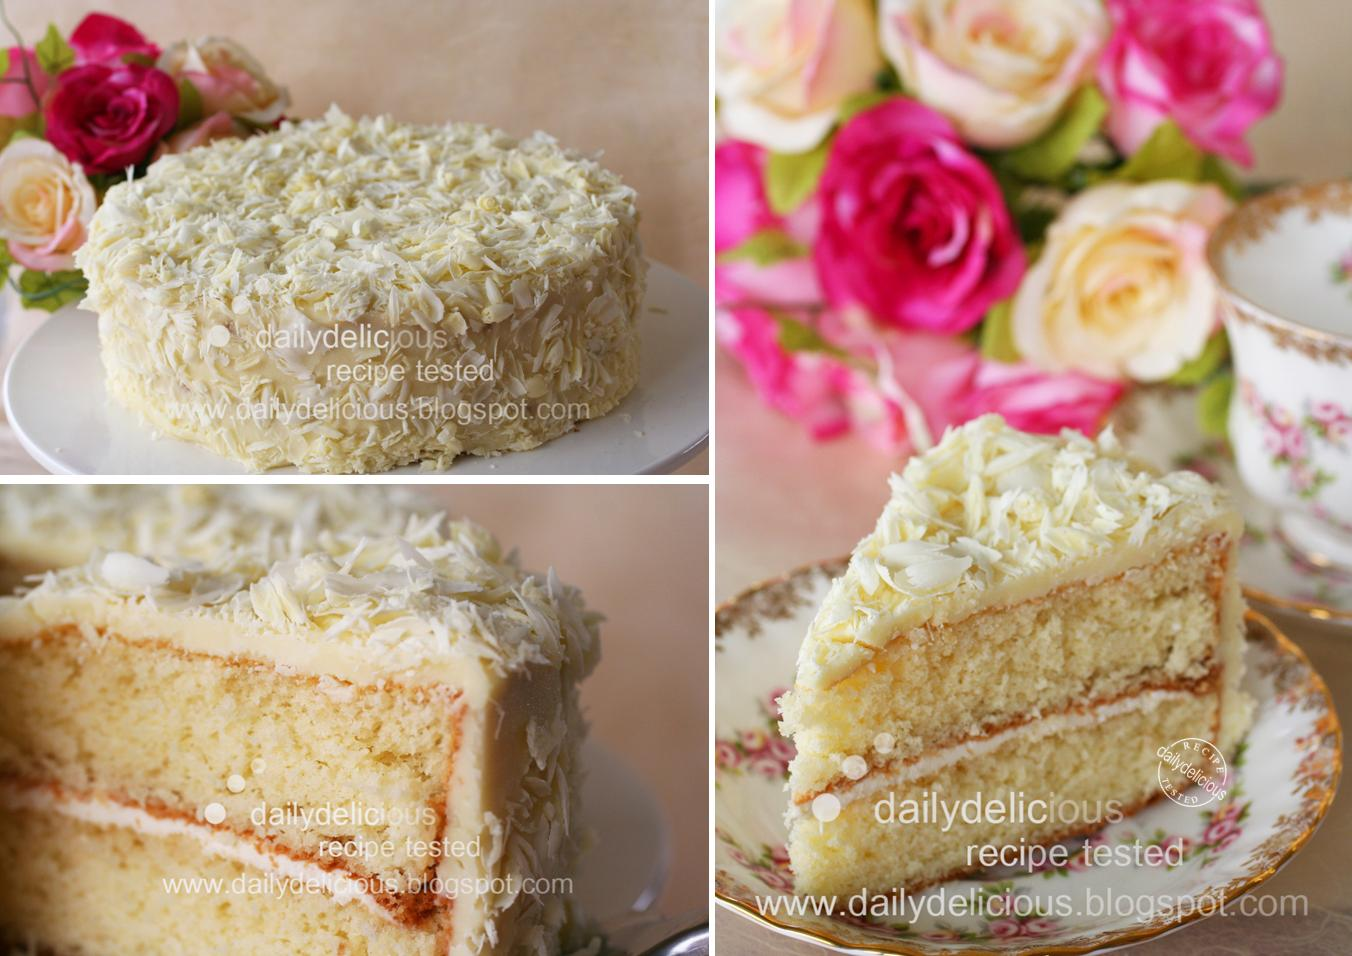 ... Rose water and white chocolate gateau: For the white chocolate lover